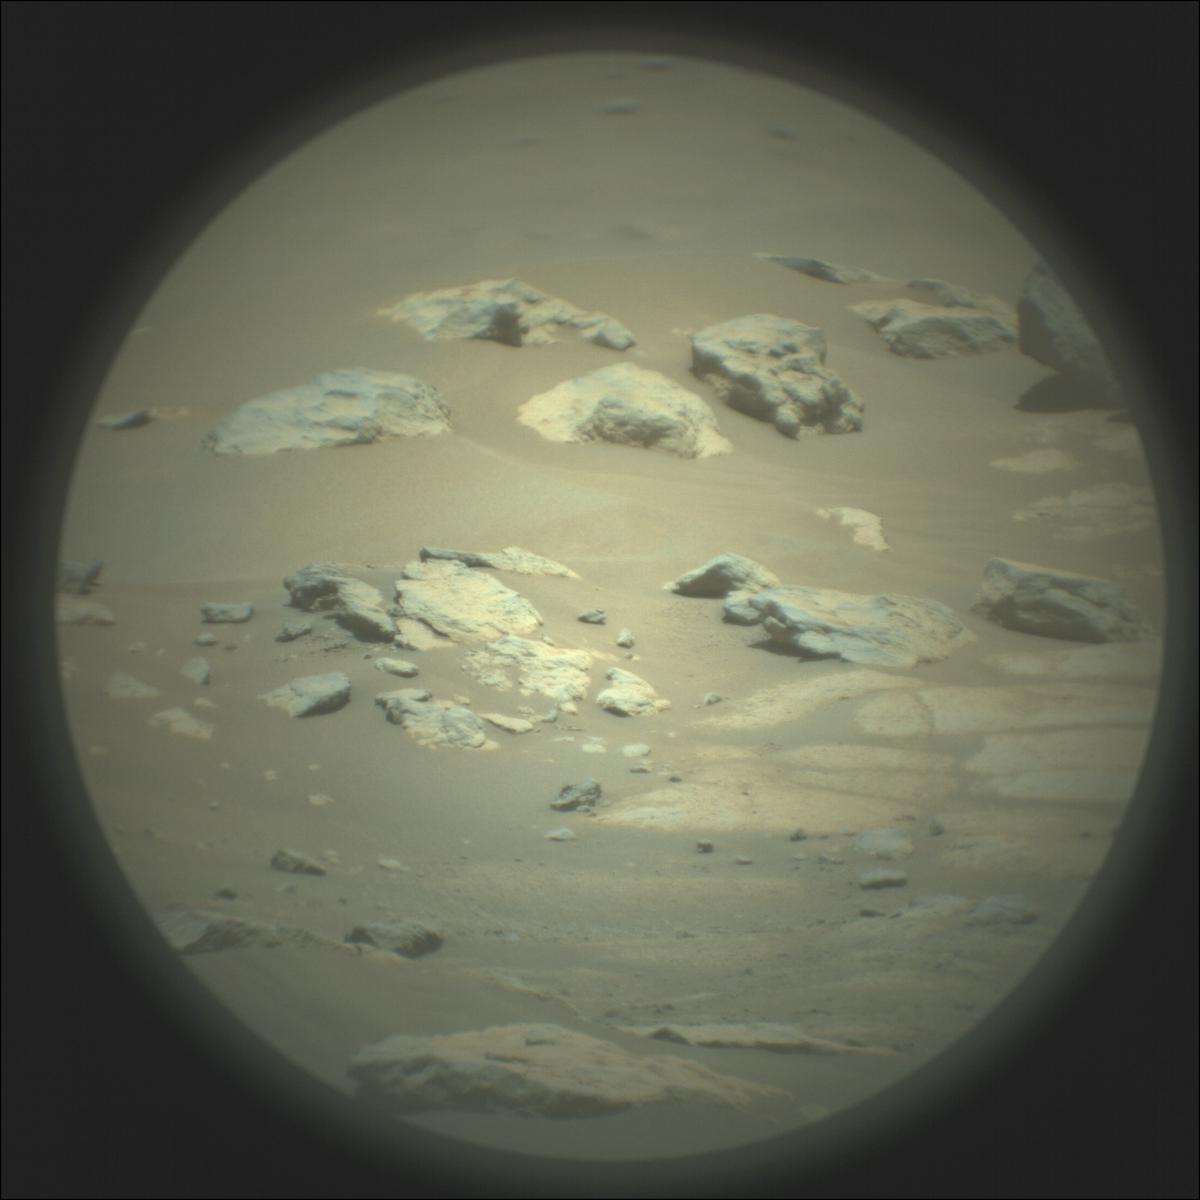 This image was taken by SUPERCAM_RMI onboard NASA's Mars rover Perseverance on Sol 119